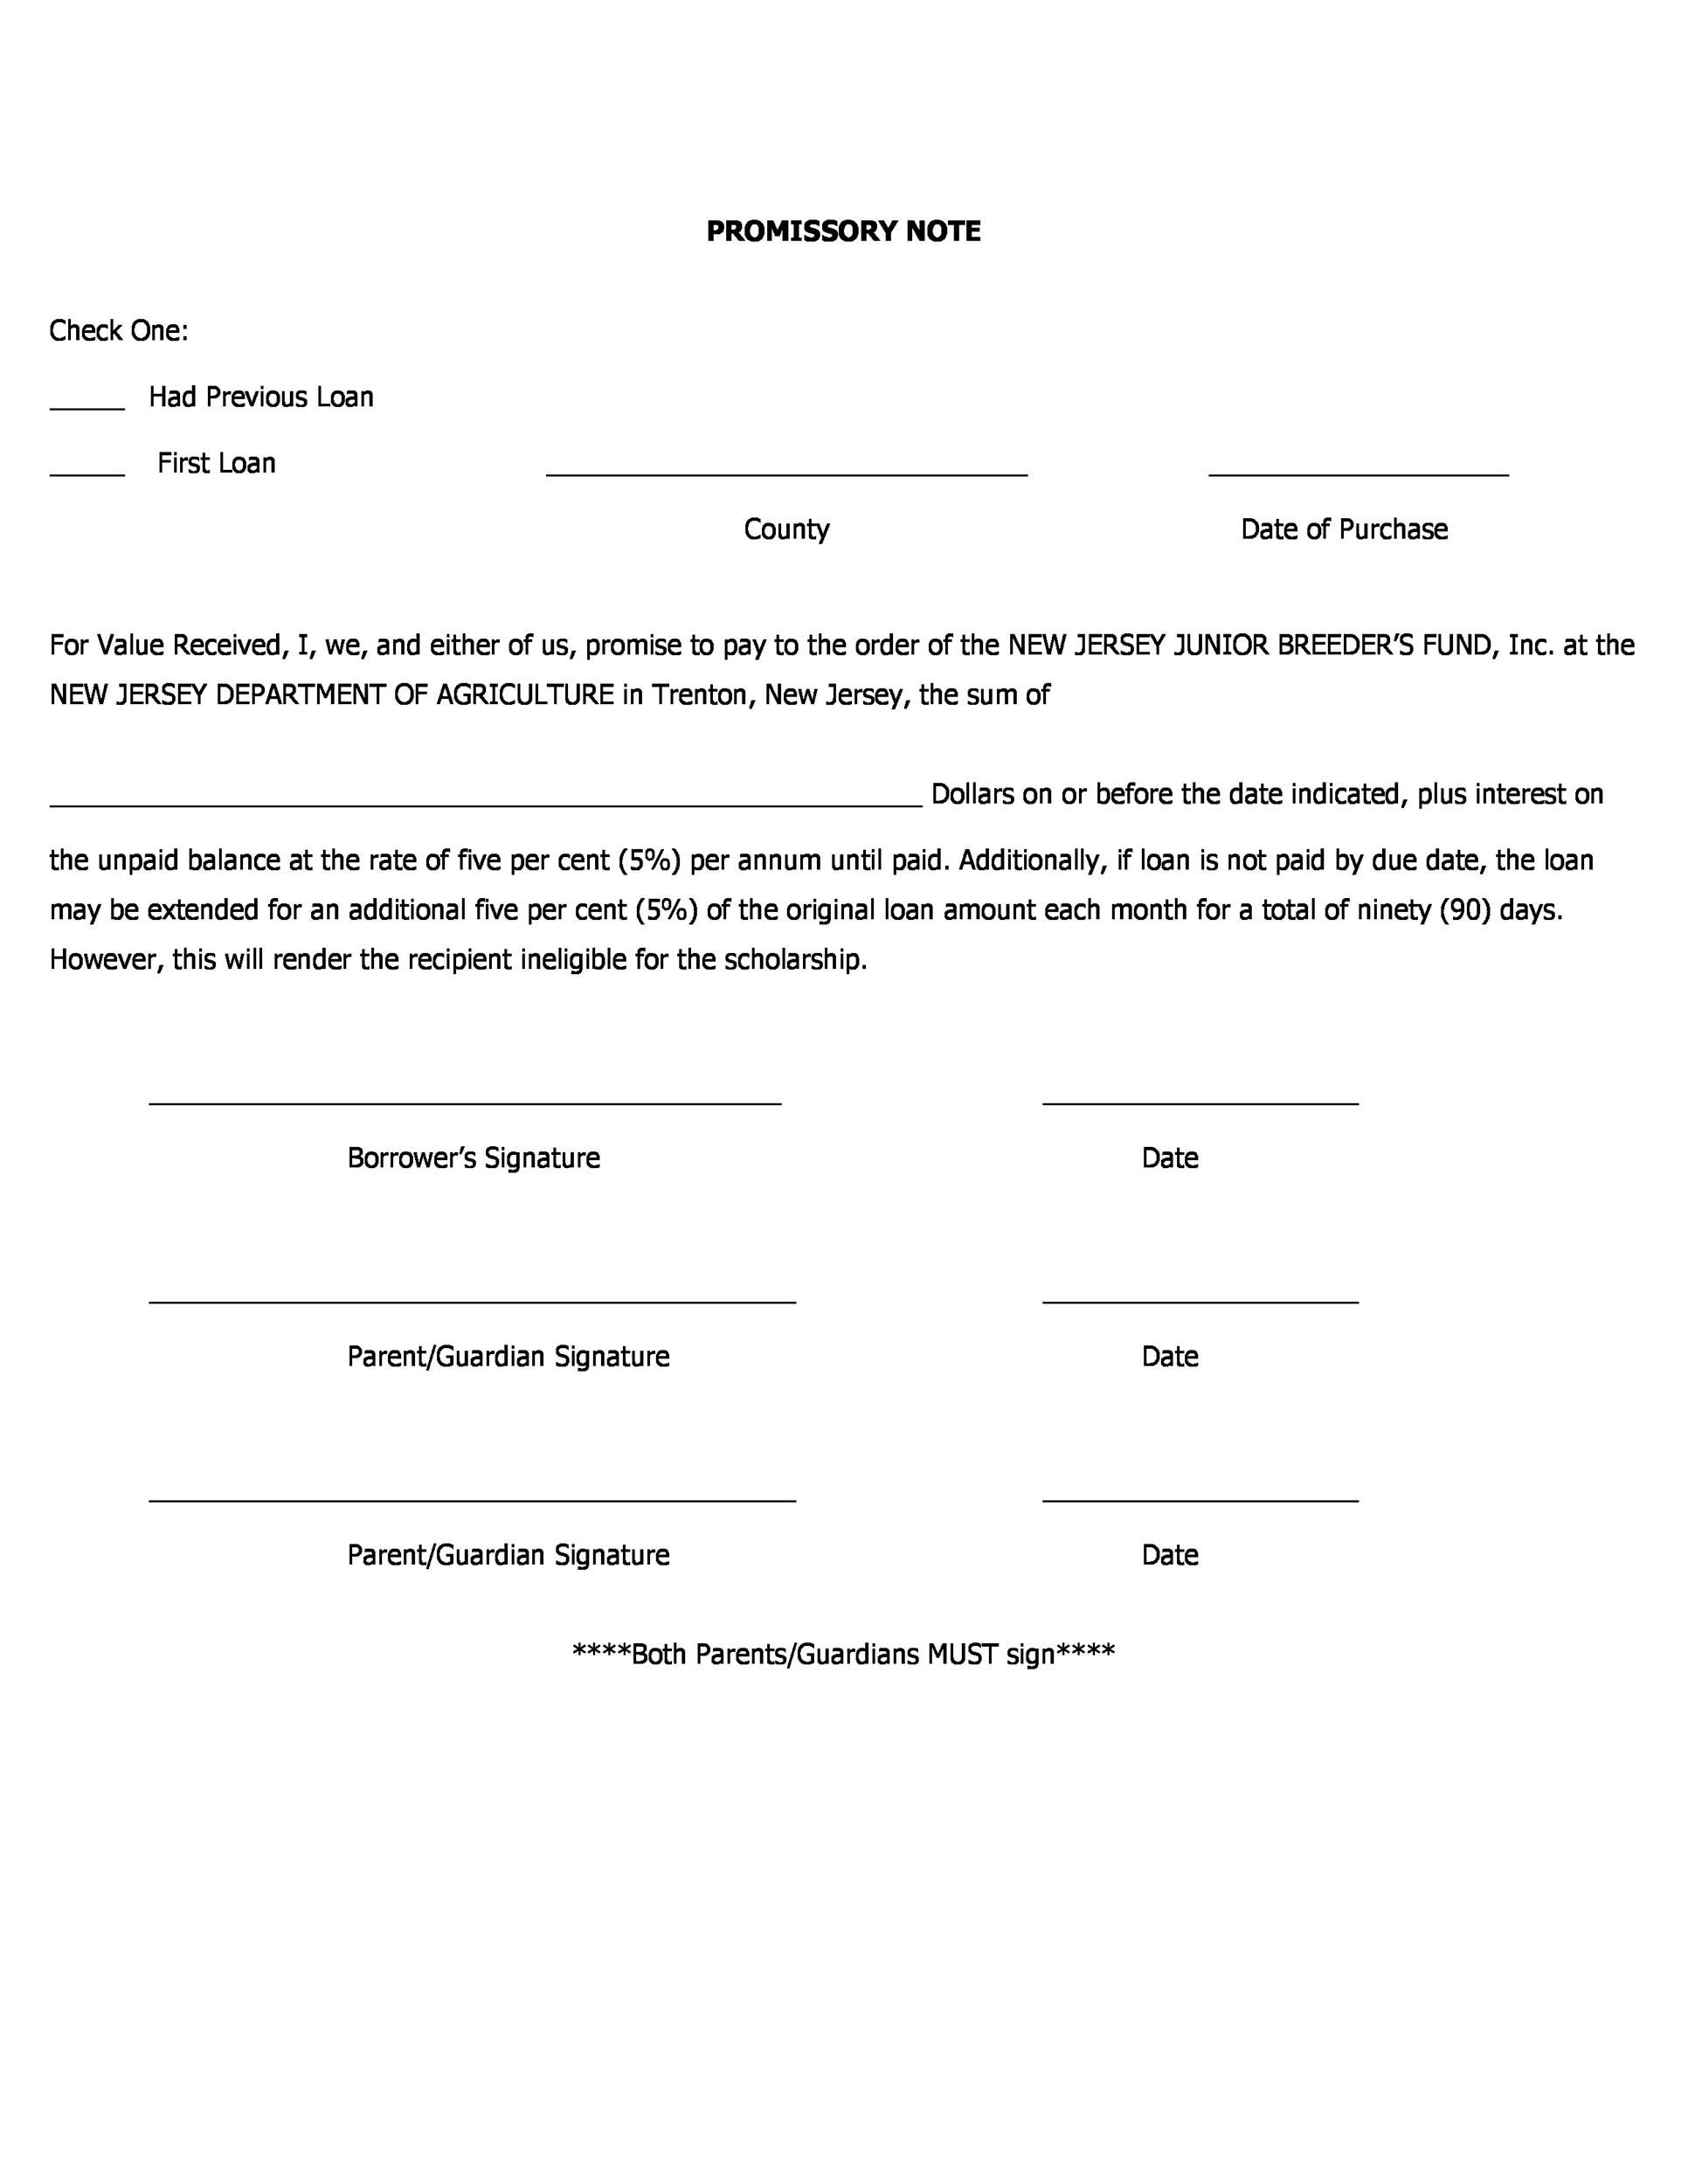 Printable Promissory Note Template 31 Pertaining To Promissory Note Template